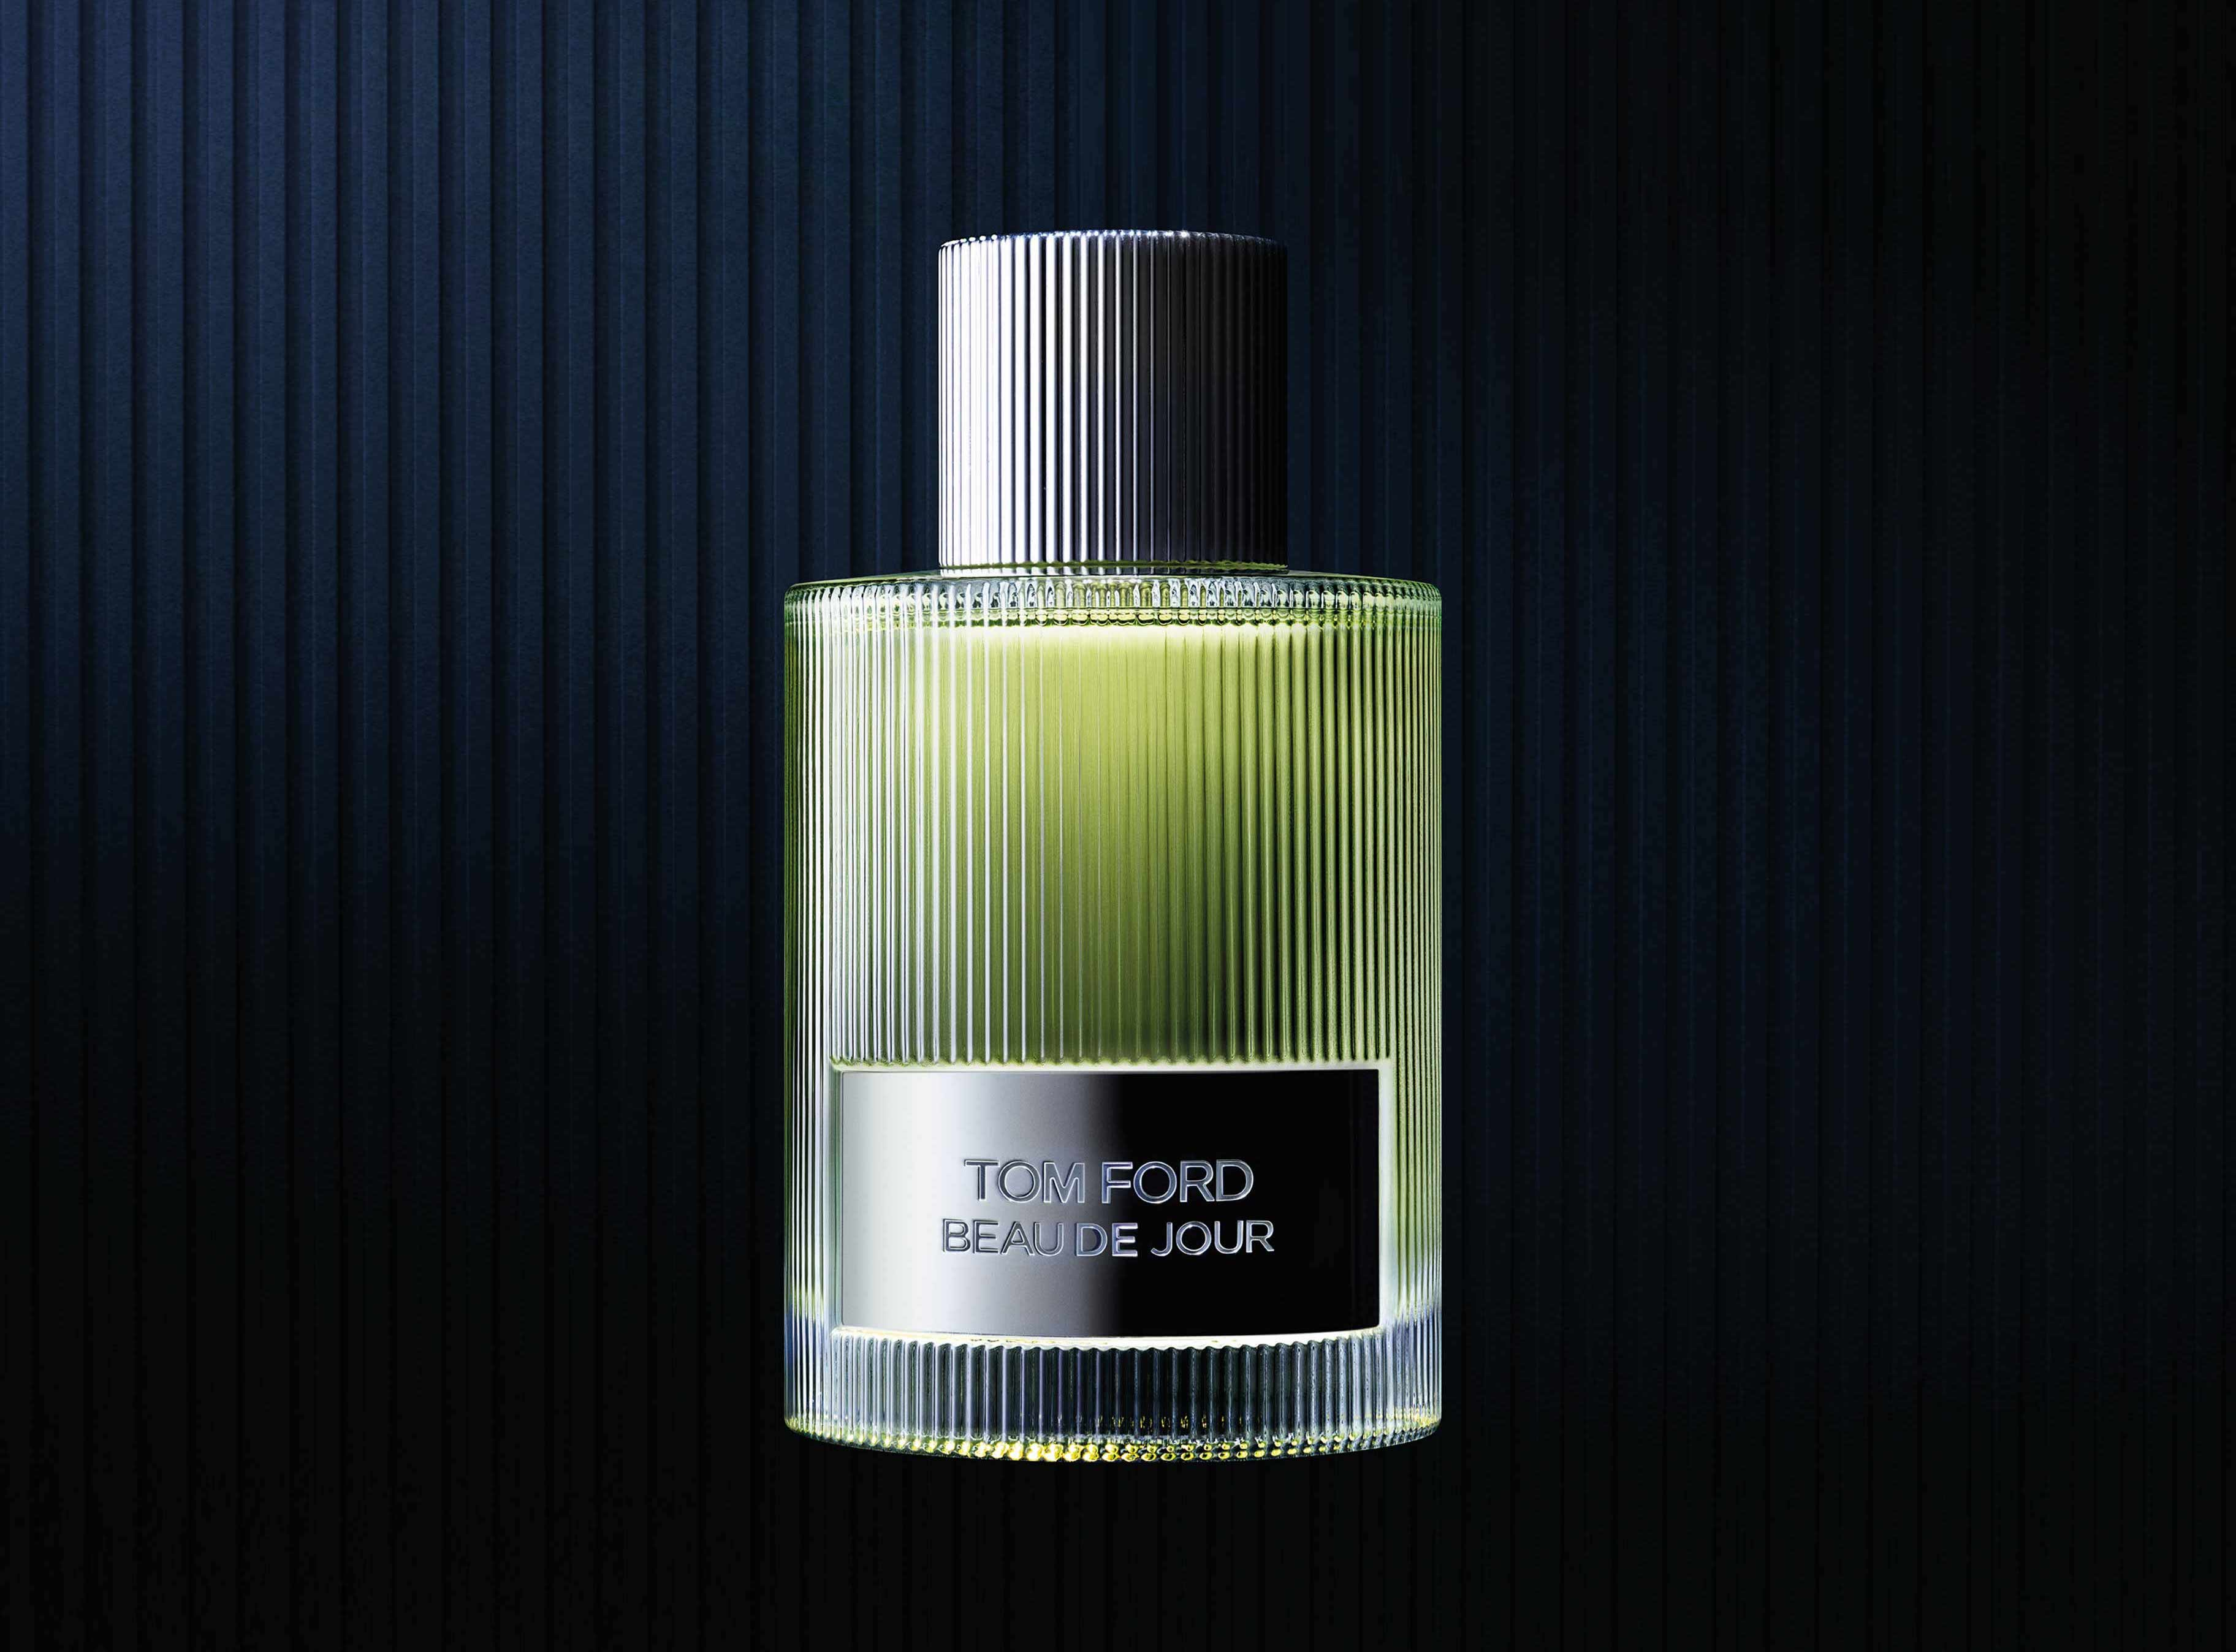 Grooming in March 2020: Tom Ford